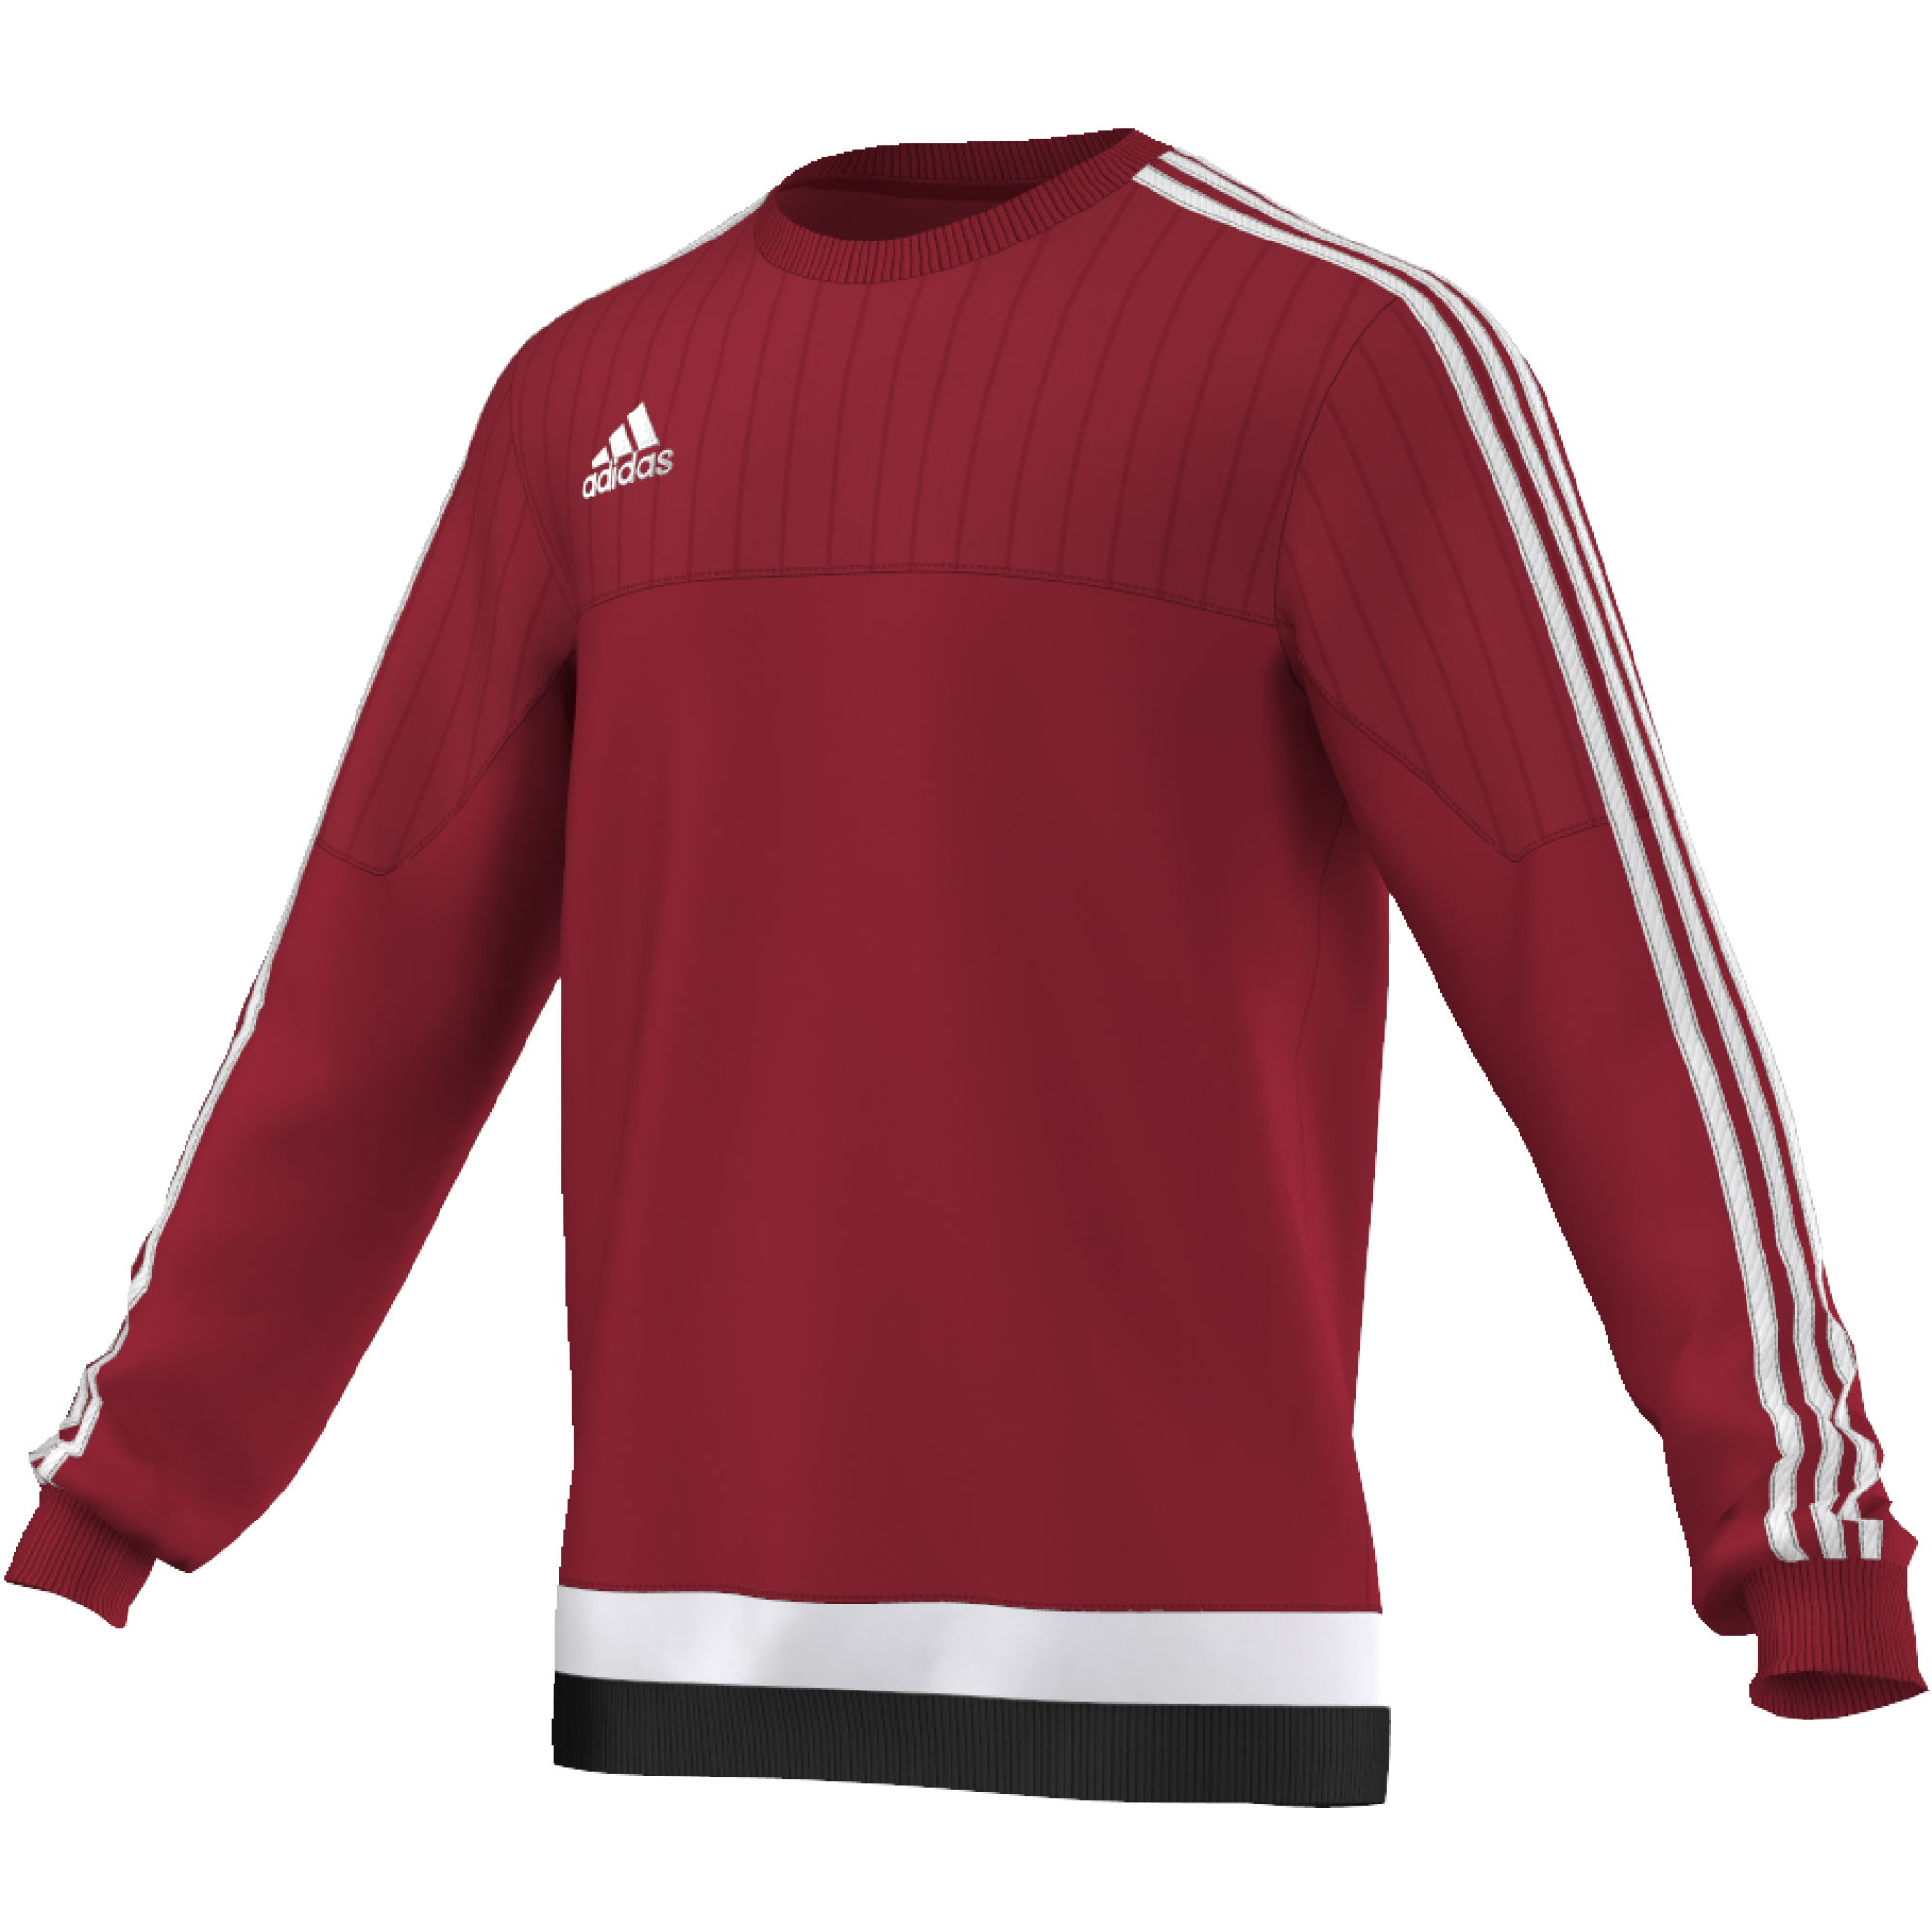 St Michael's on Wyre Primary School Adidas Red Sweat Top